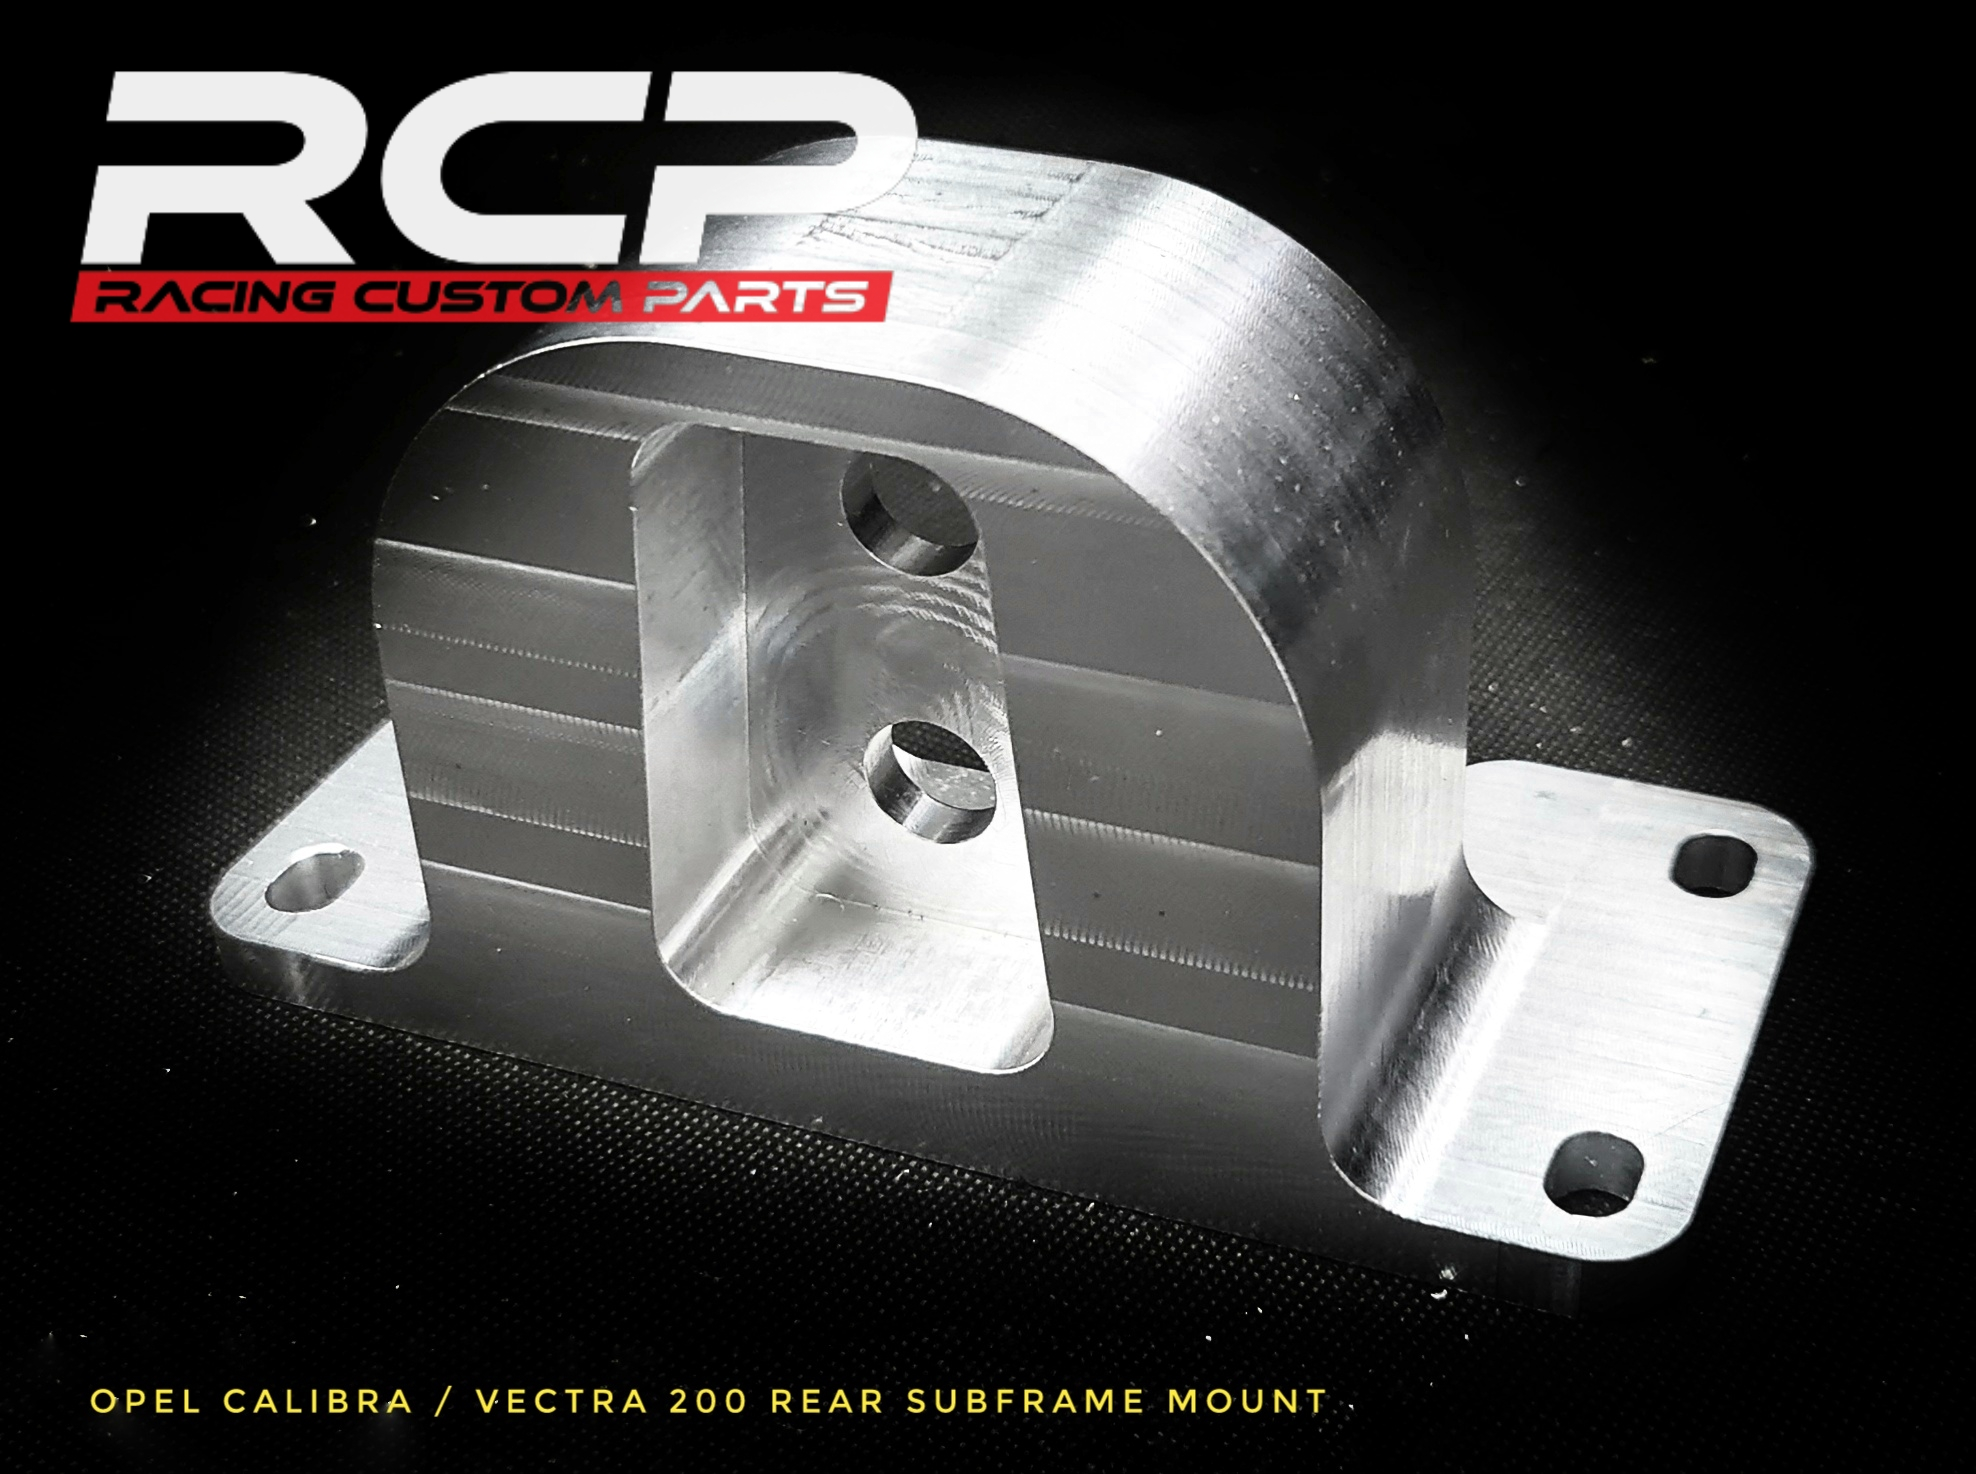 opel calibra turbo 4x4 vectra 2000 rear diff differential subframe mount holder c20let rcp racing custom parts billet cnc